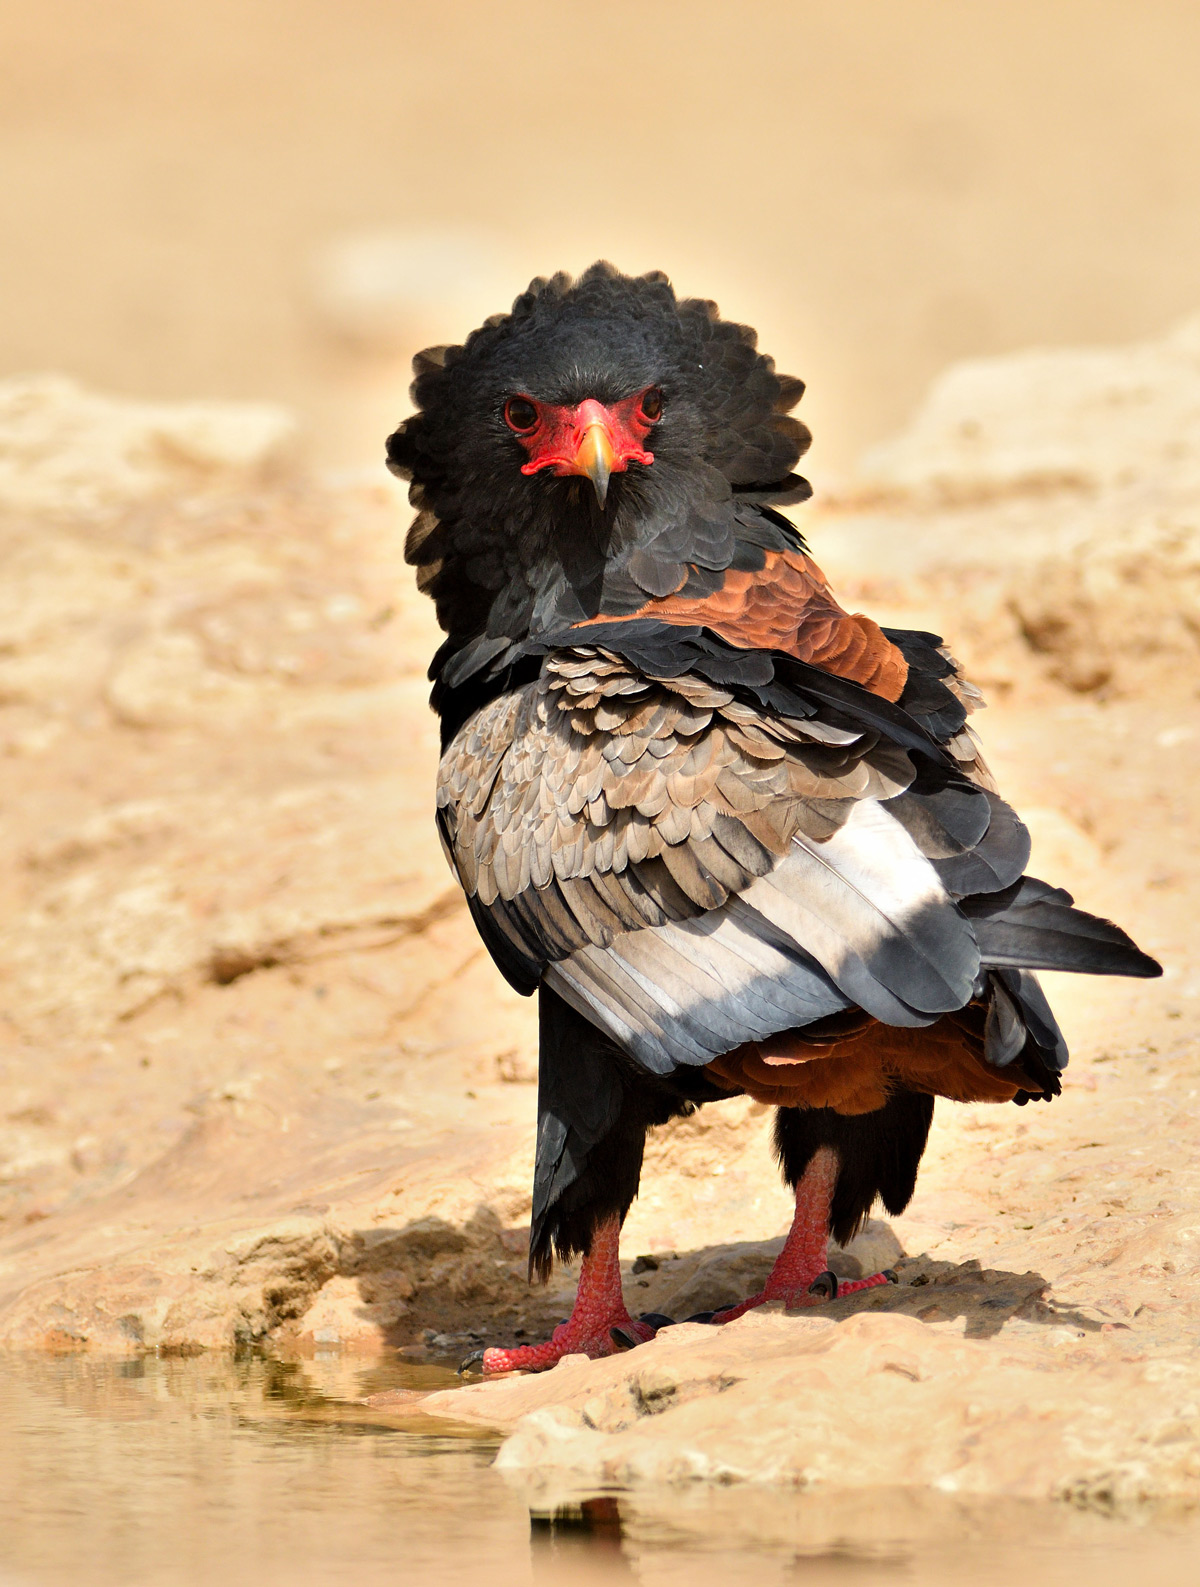 A bateleur stands by a waterhole in Kgalagadi Transfrontier Park ,South Africa© Rob Keulemans